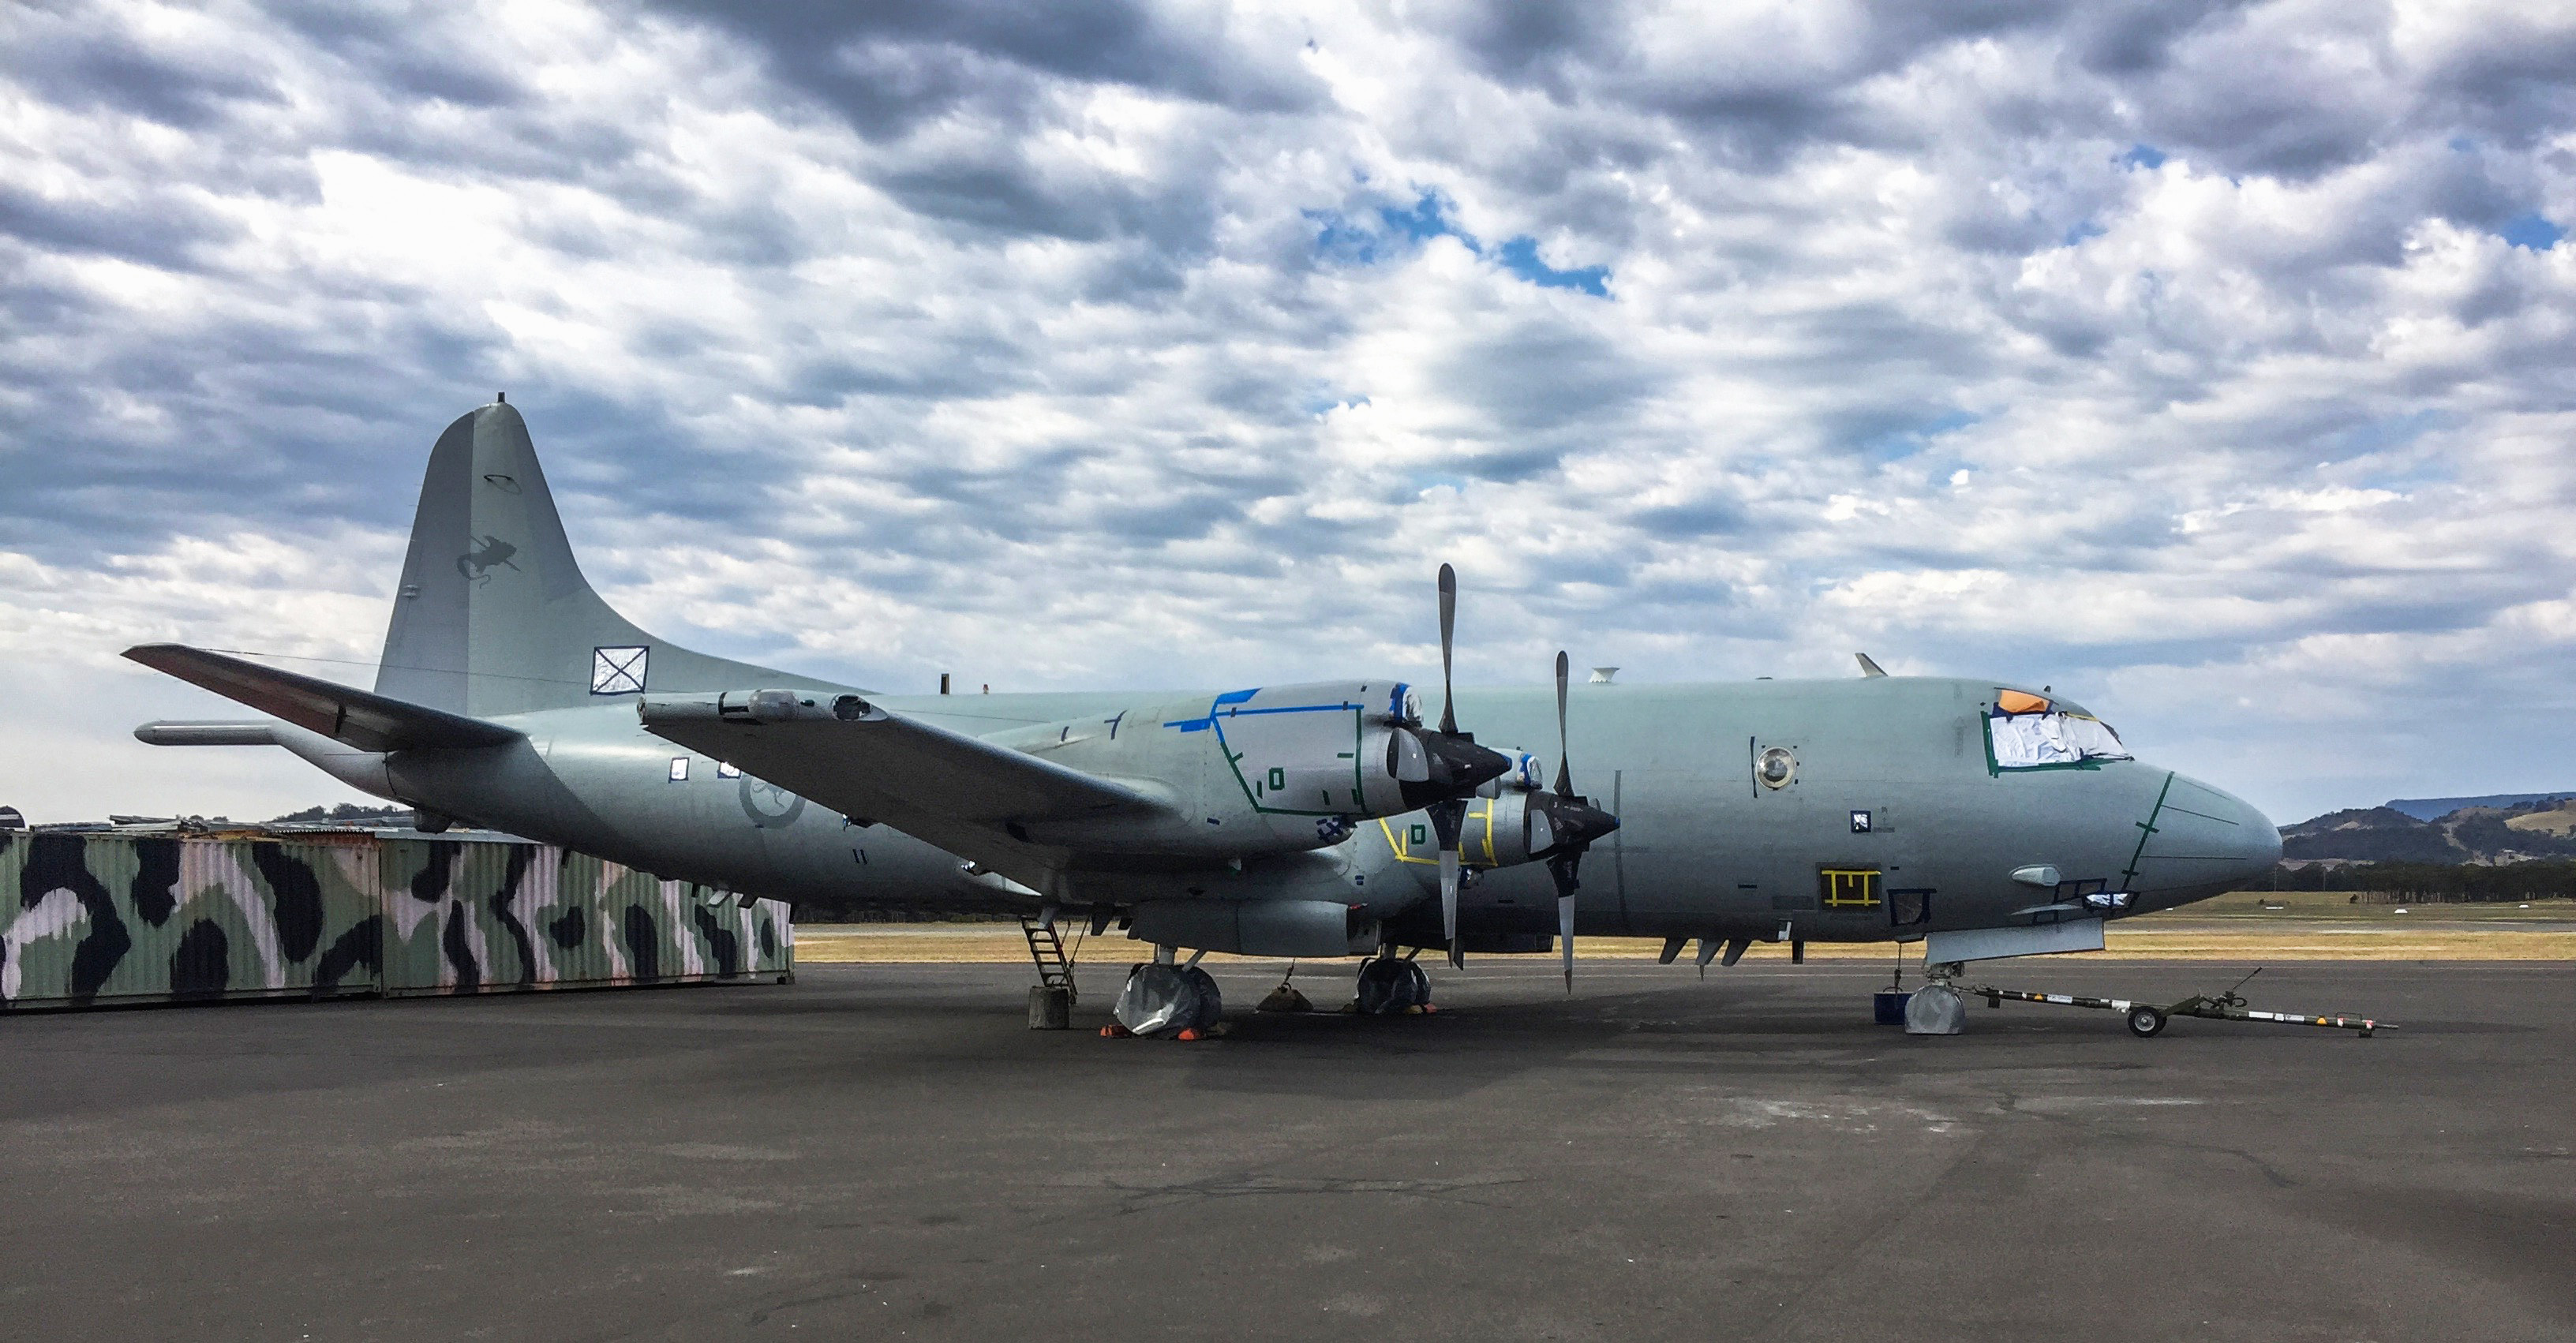 HARS AP-3C Orion on the ramp at the museum. The aircraft is currently inhibited to prevent moisture getting in to sensitive areas, but will receive a thorough going over in preparations for flying again in the coming months. (photo via HARS)